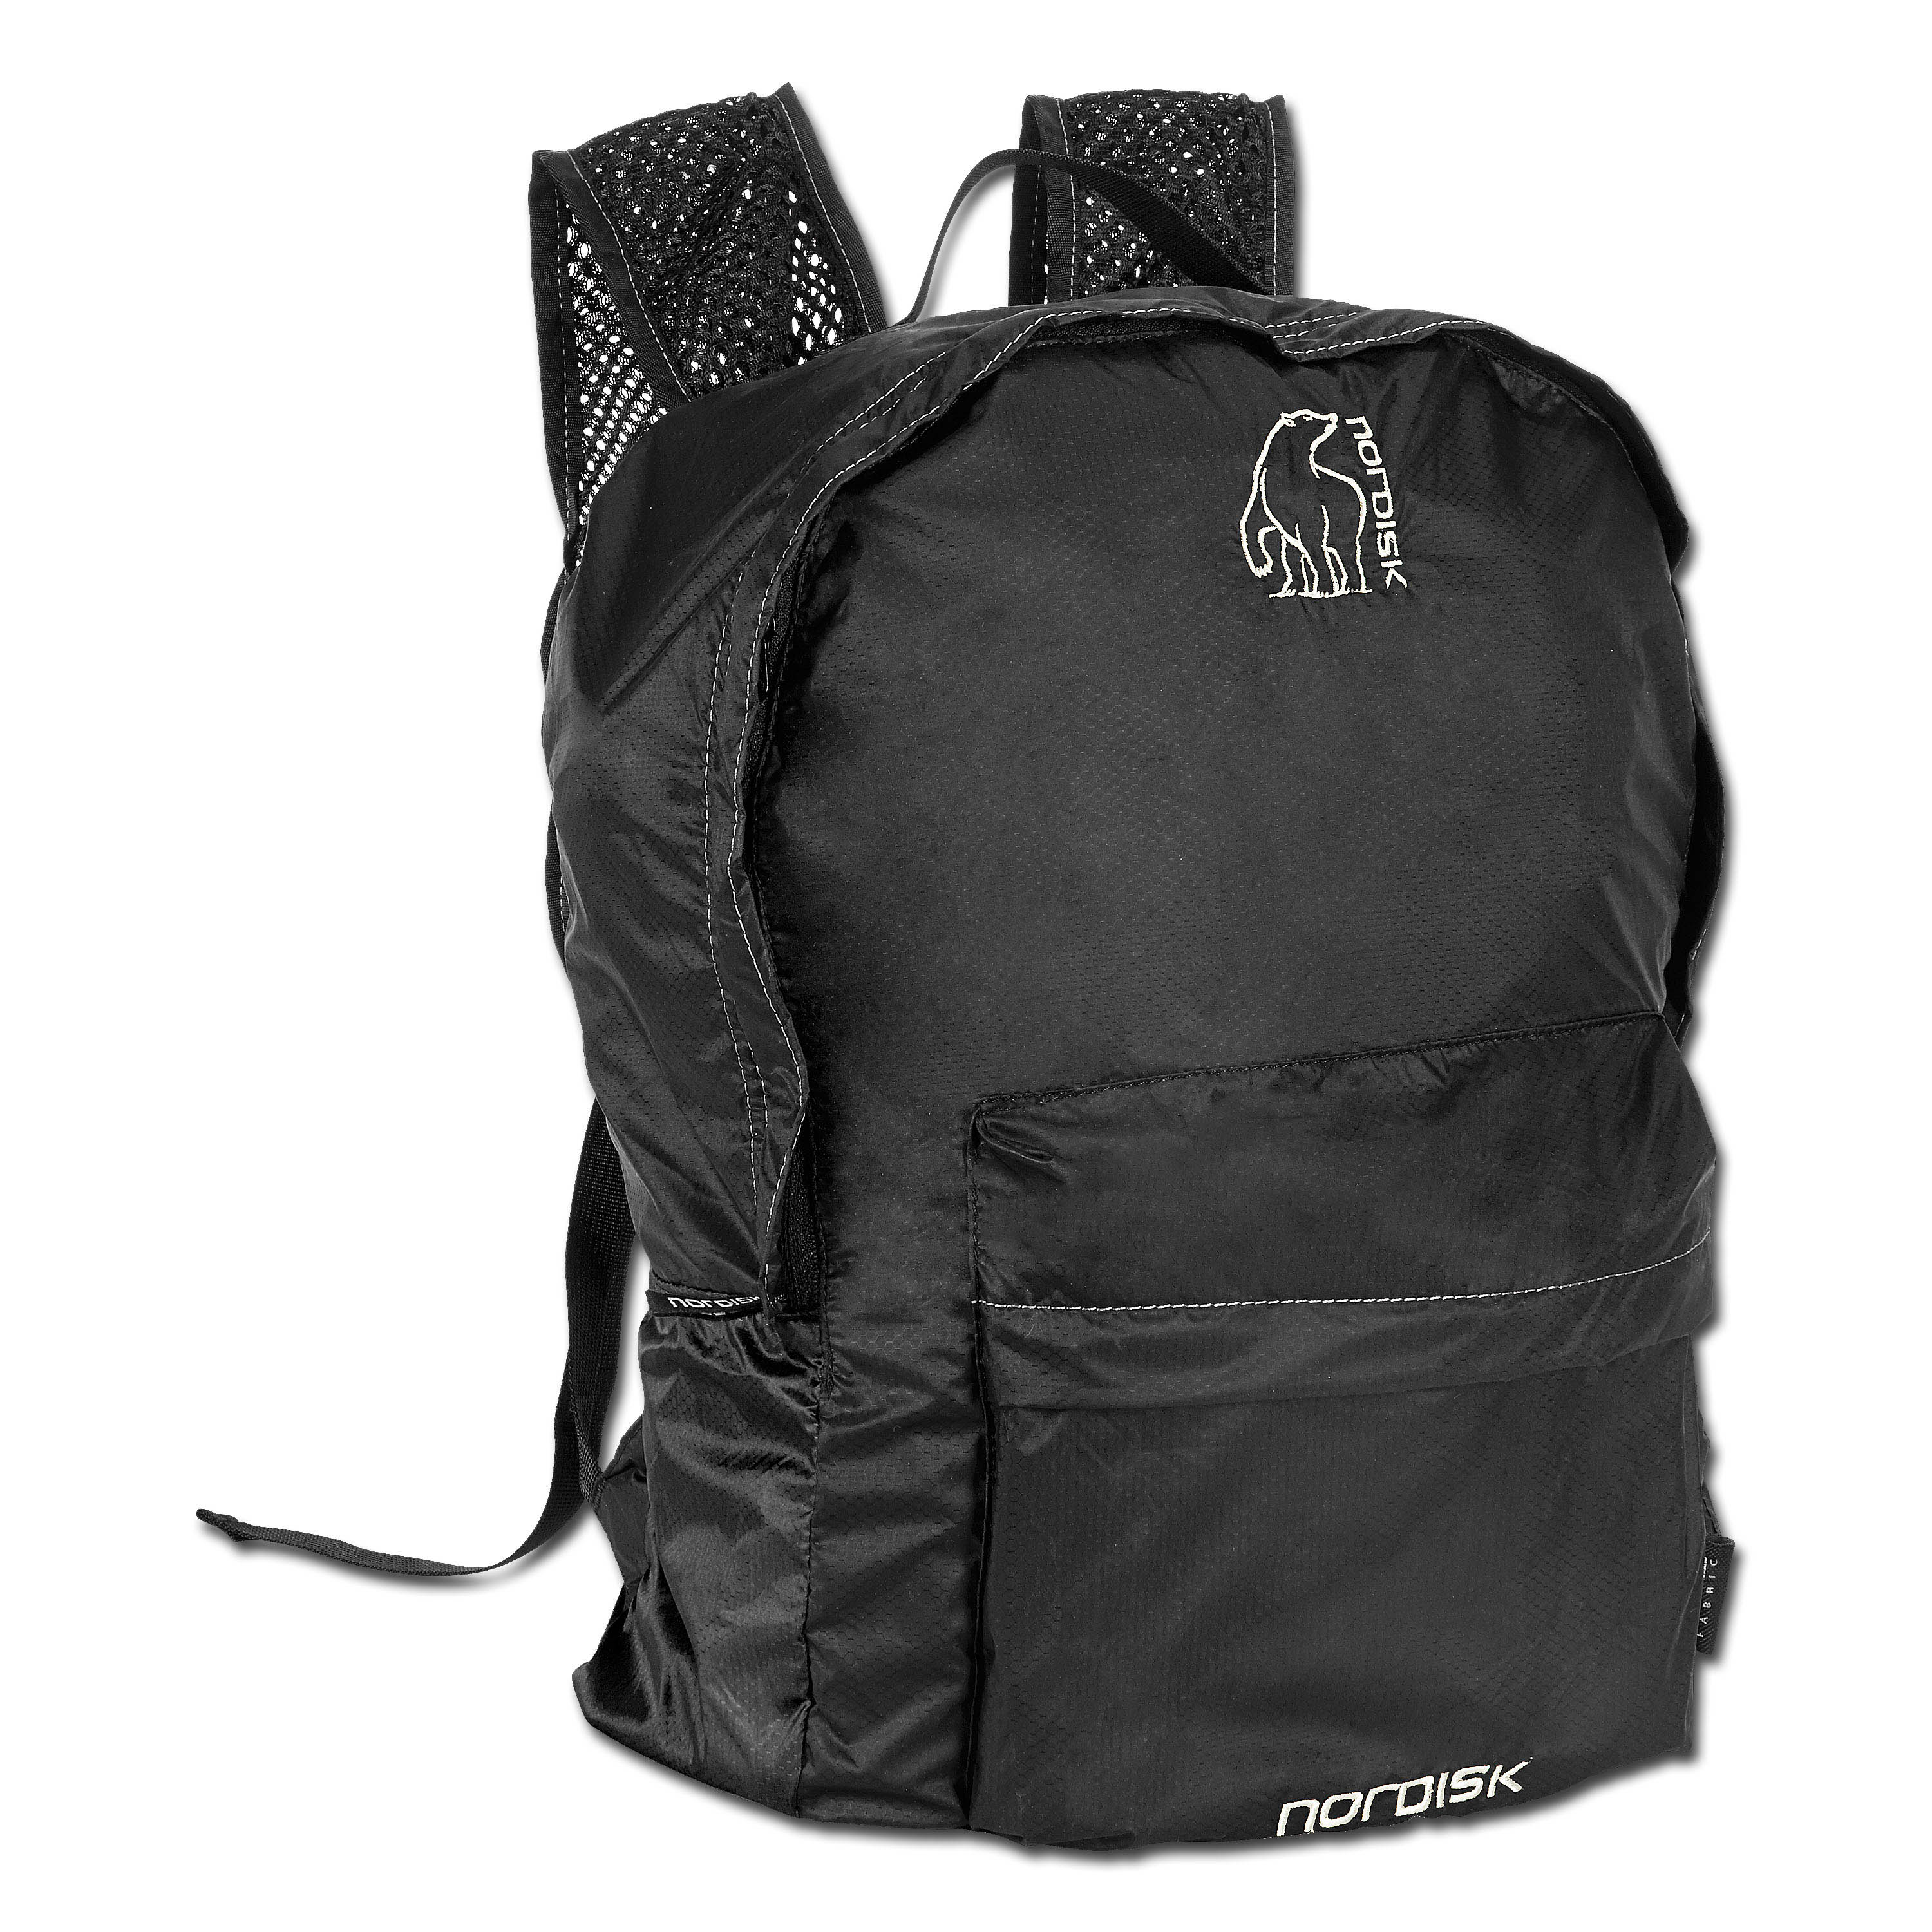 Backpack Nordisk Ribe black 20L